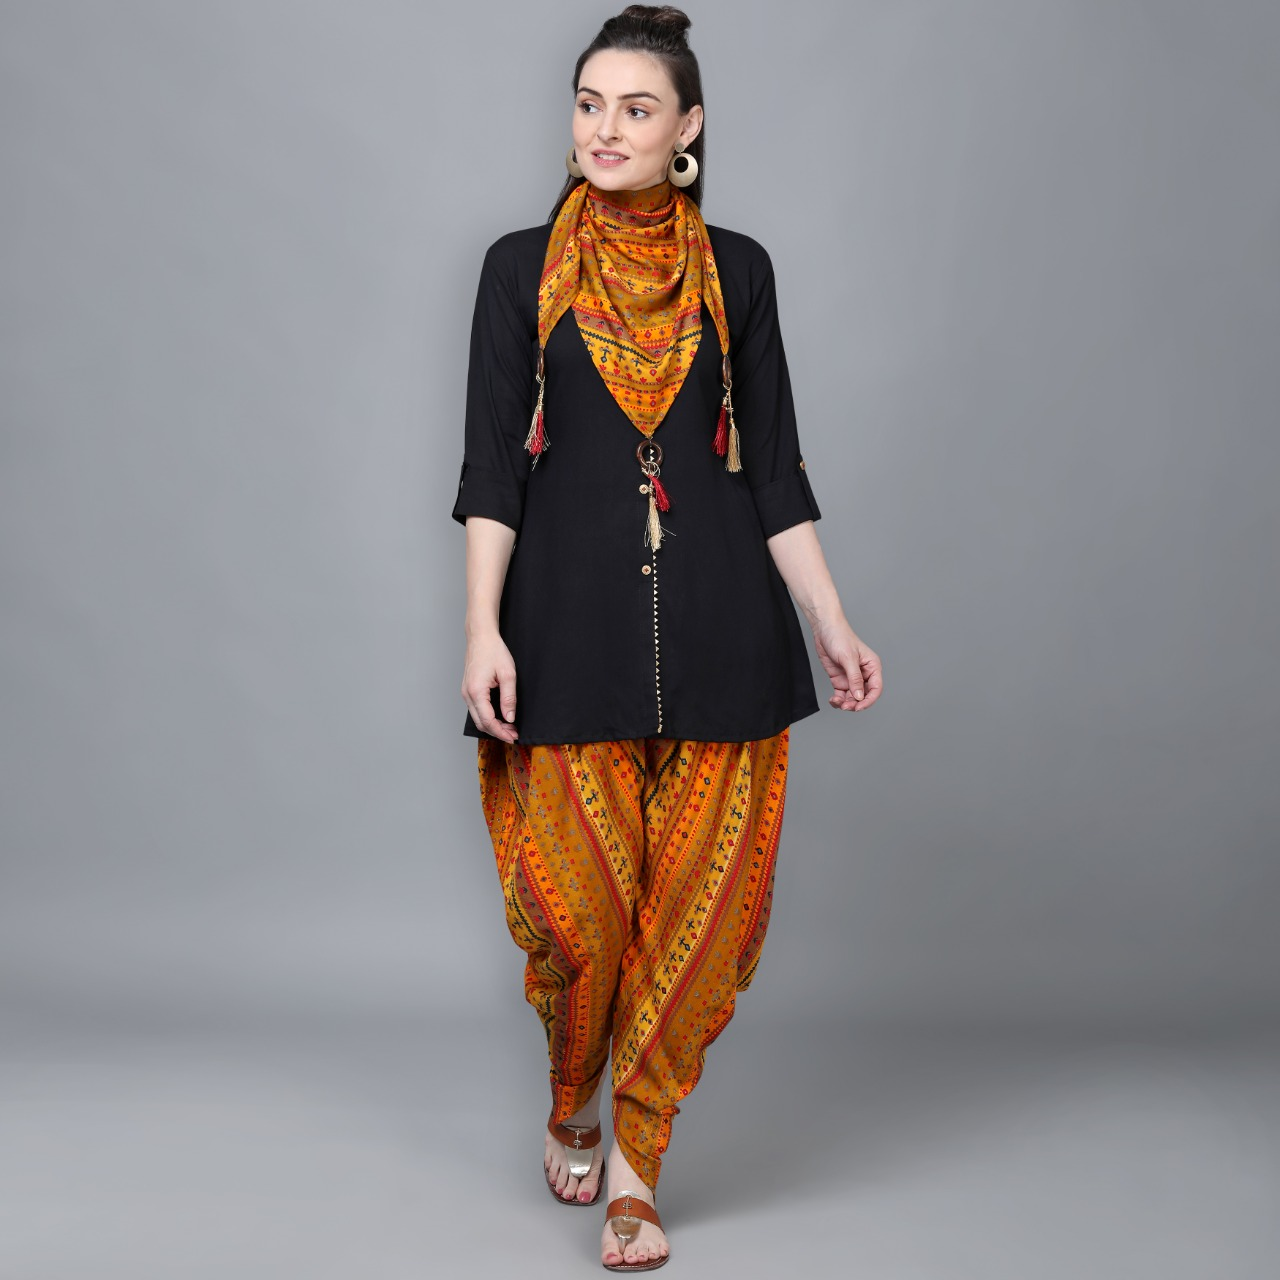 Thankar presents 4001 to 4004 designer rayon Kurti and dhoti with a beautiful scarf